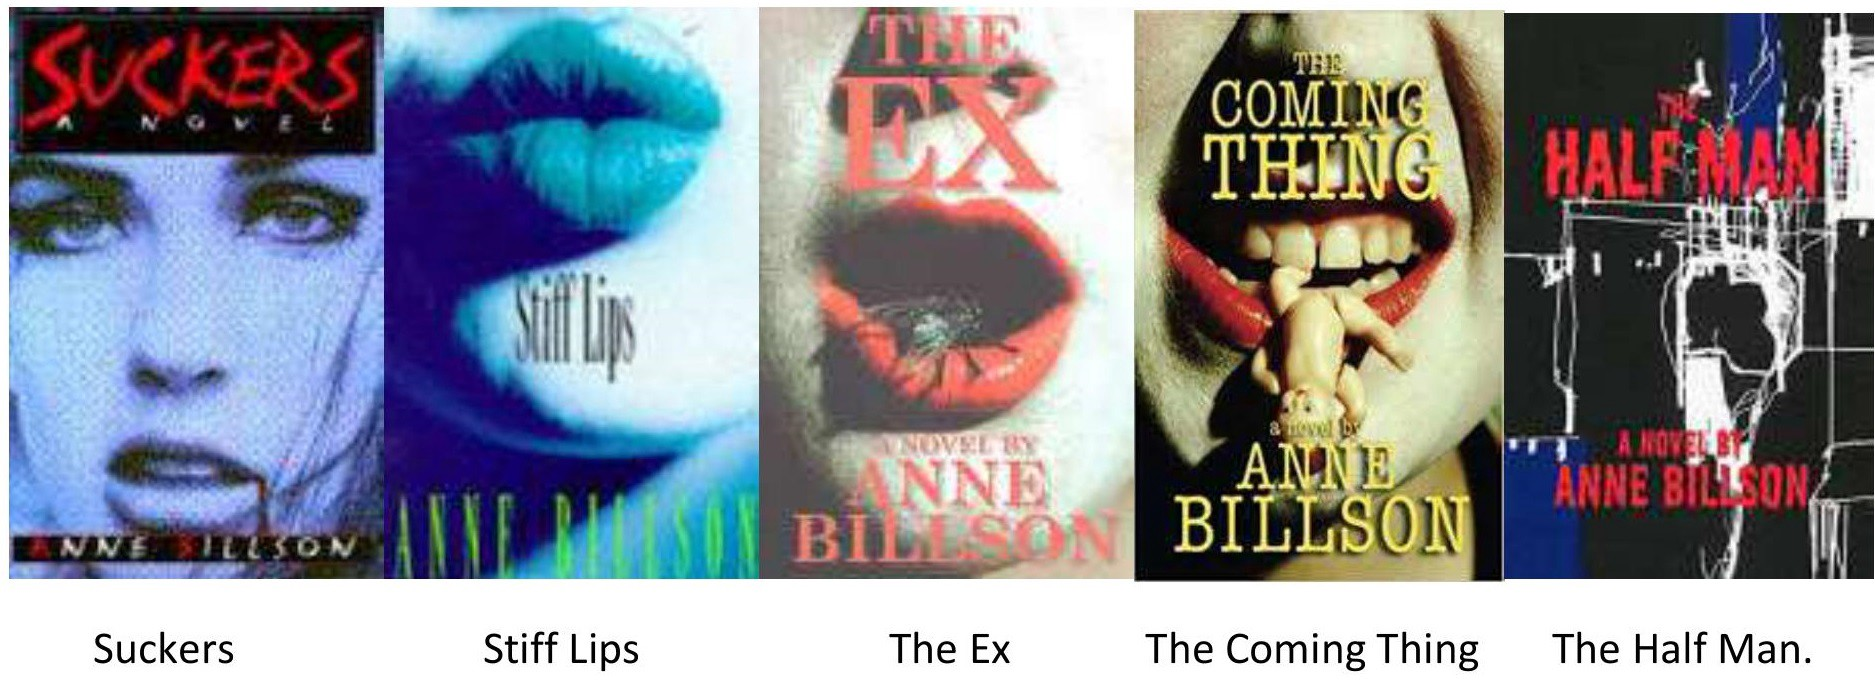 What are you reading? With Author Anne Billson